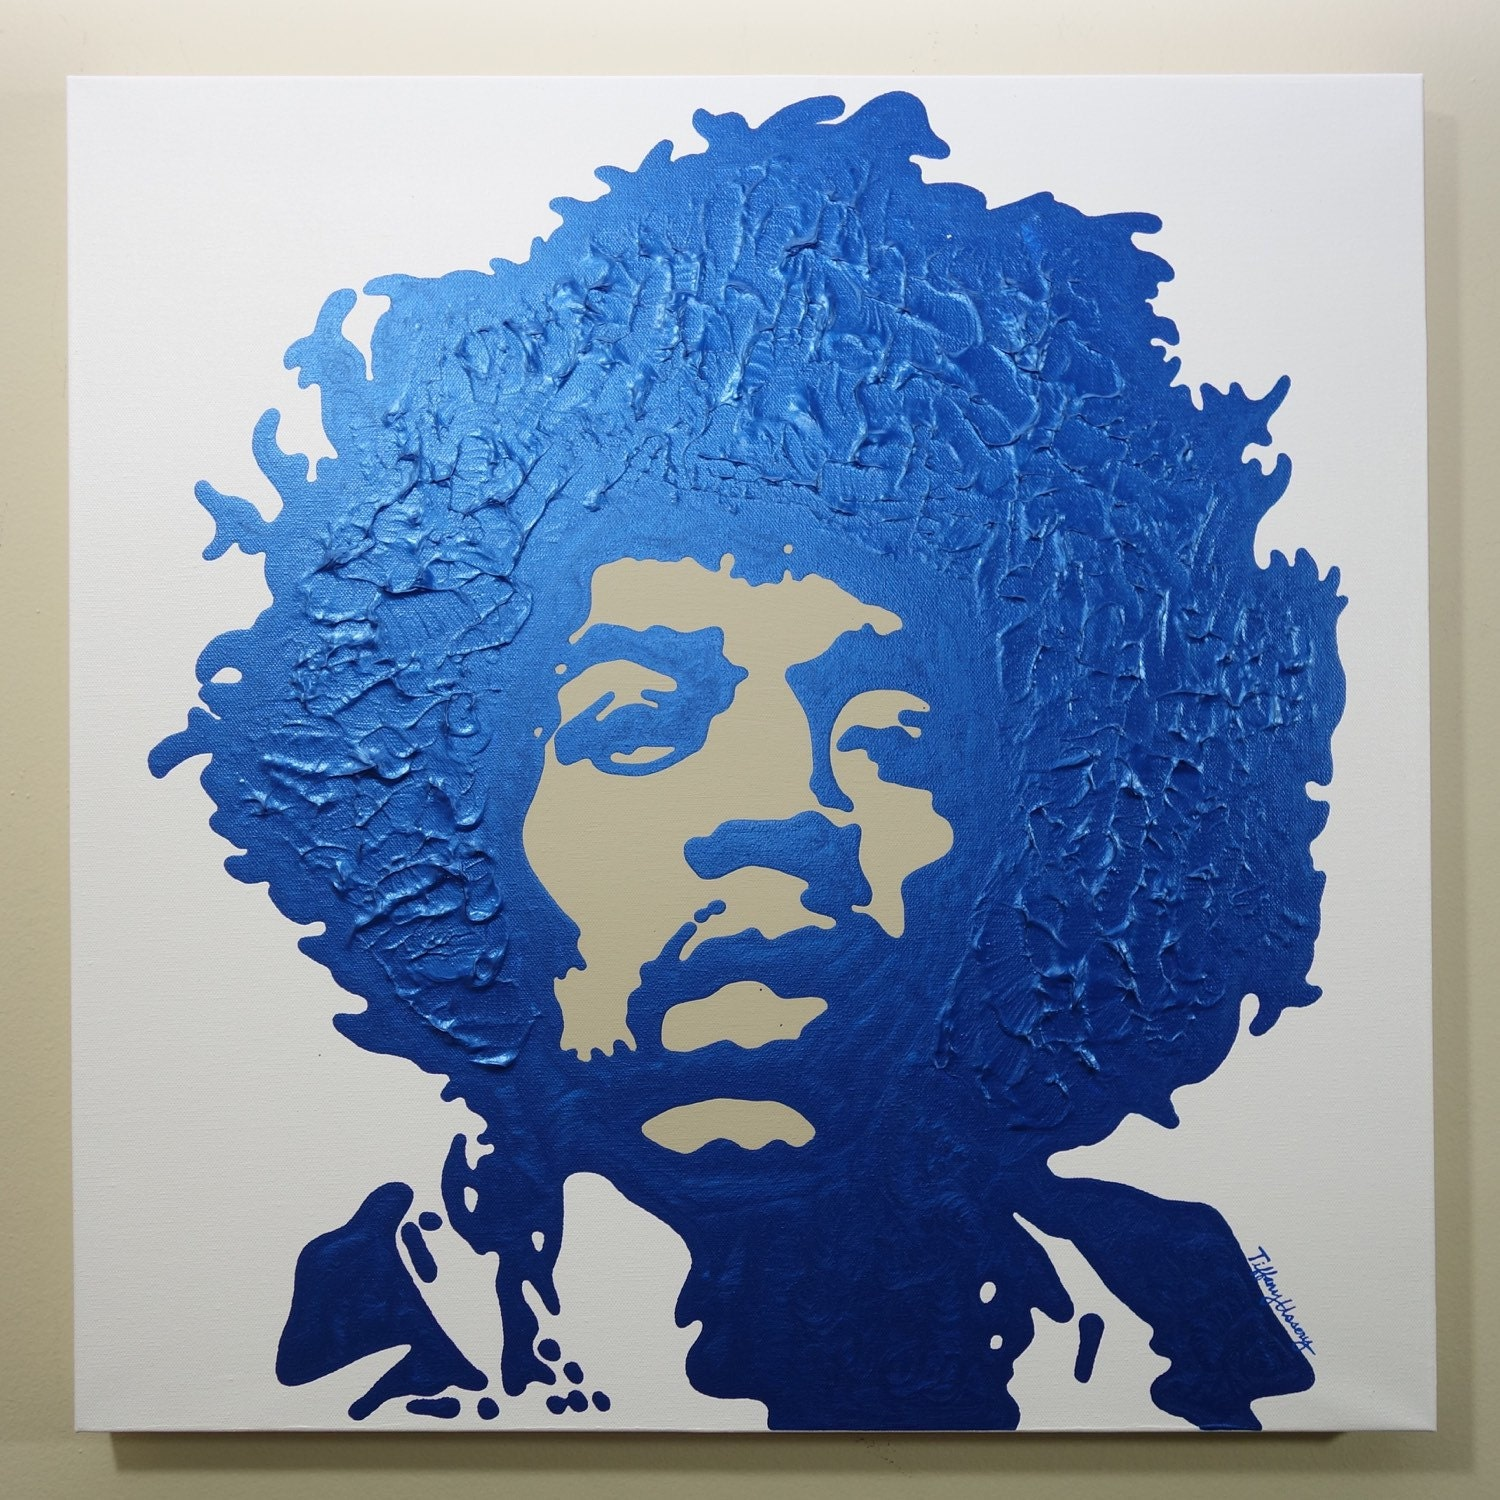 Jimi Hendrix Painting 24x24 Pop Art Rock And Roll Art Blue